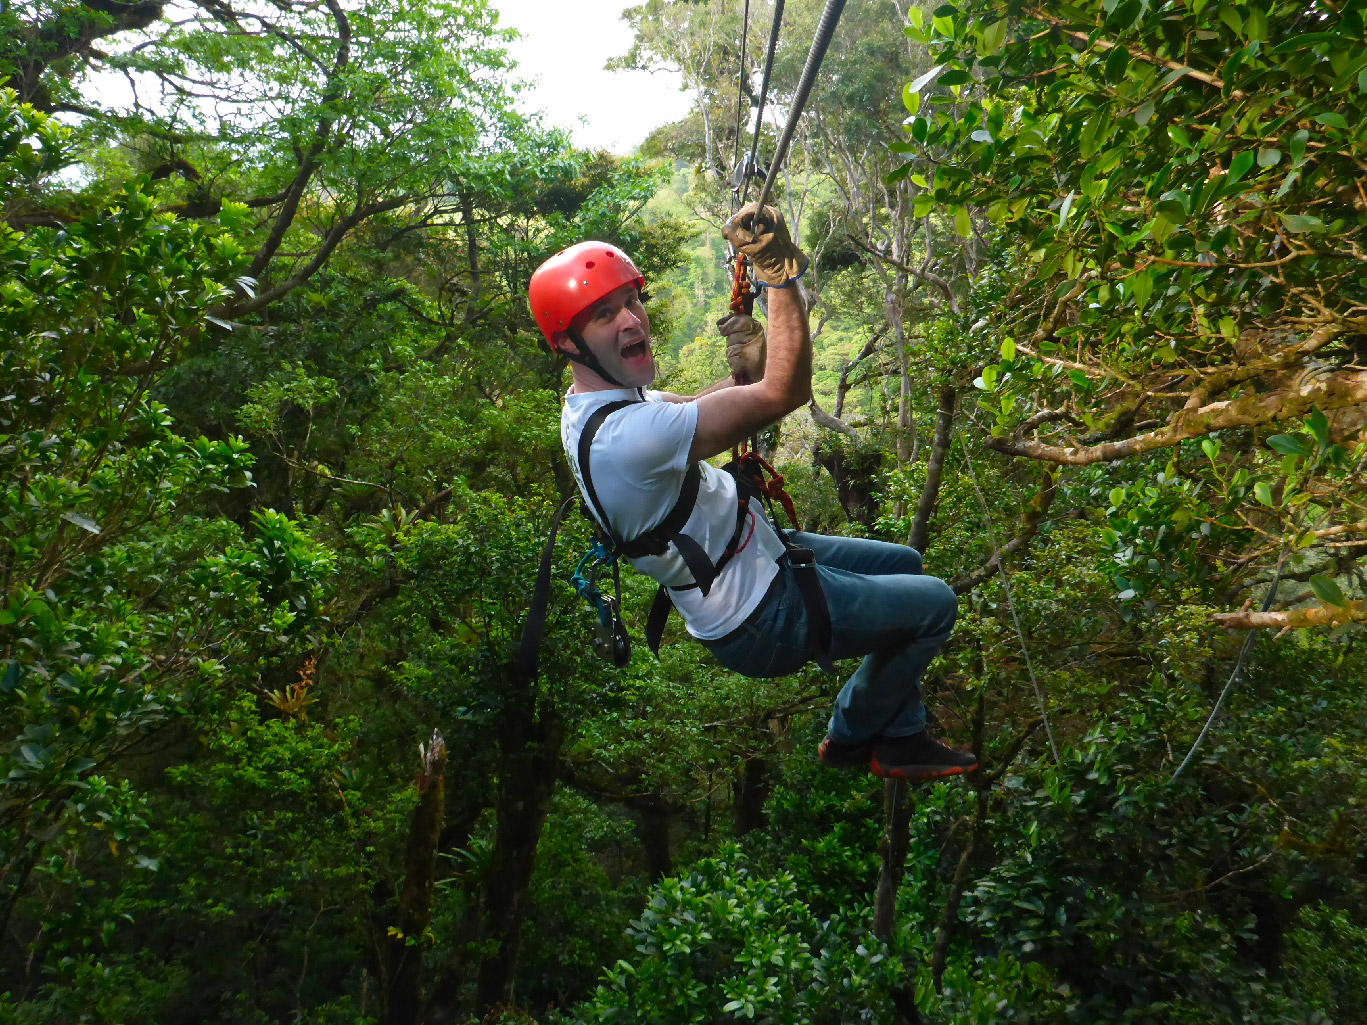 a man on a zipline